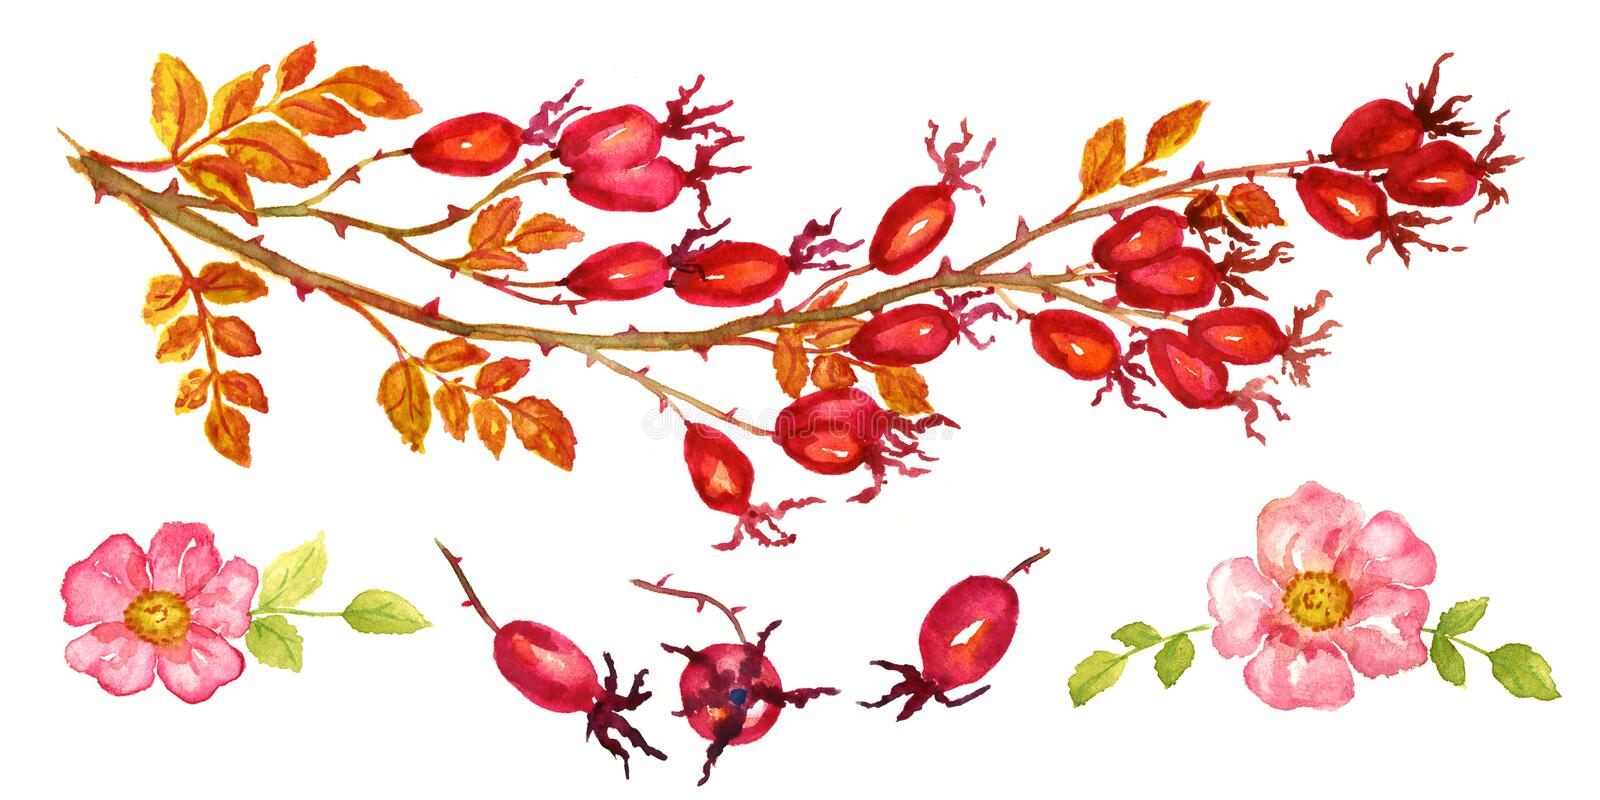 Sprig of rose hips with berries and blossoms vector illustration